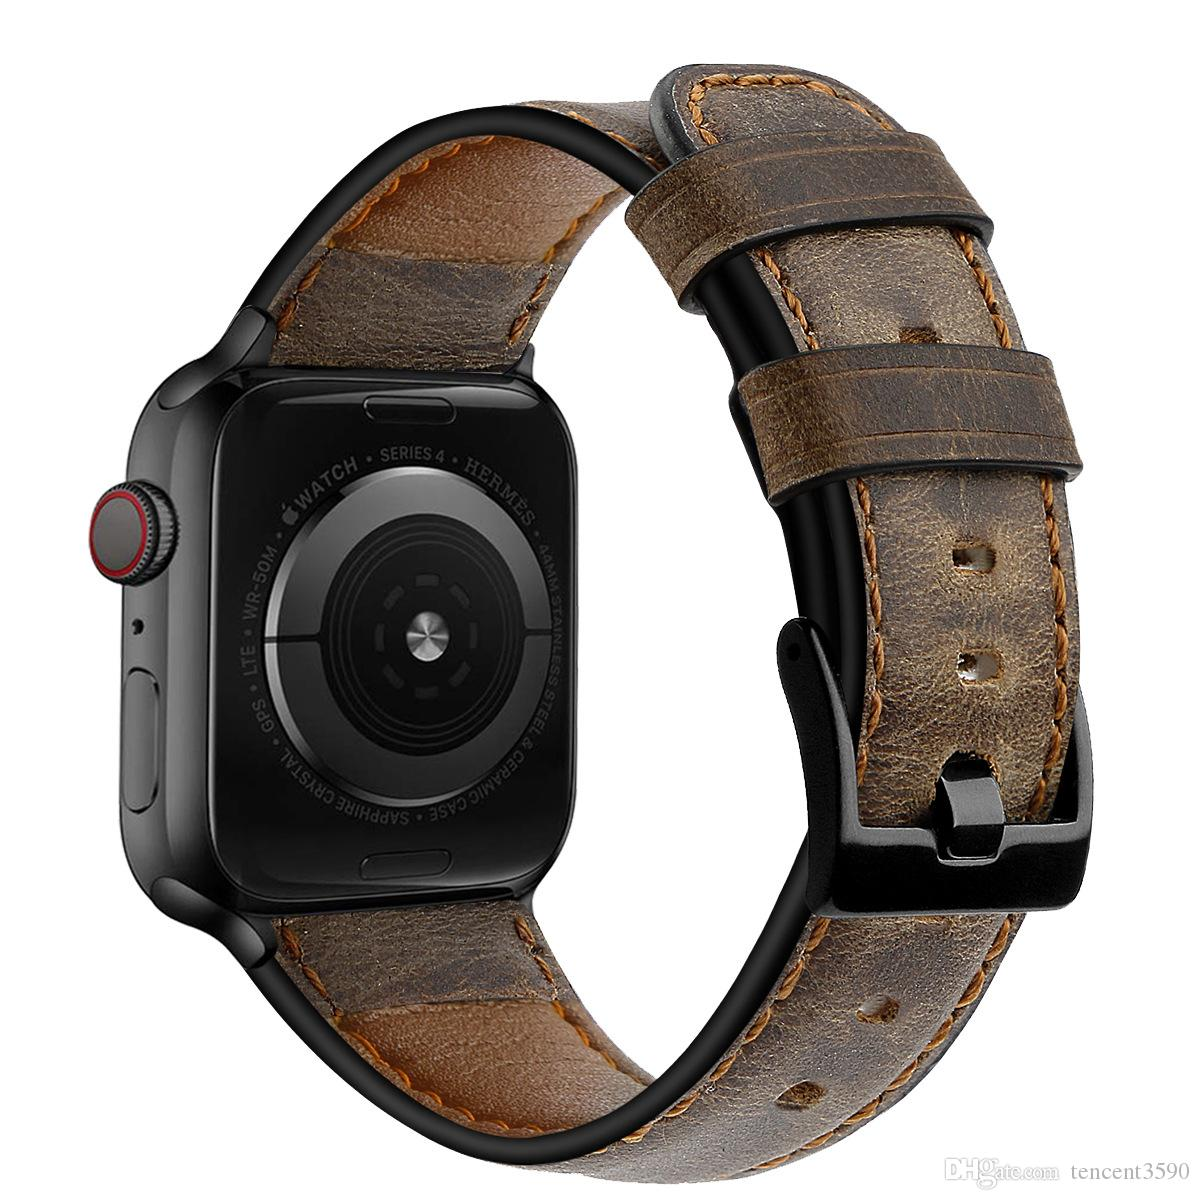 Good Quality Retro Leather Band for Apple Watch Series 5 4 3 2 1 Replacement Watch Strap for Iwatch 38mm 40mm 42mm 44mm Watch Bands